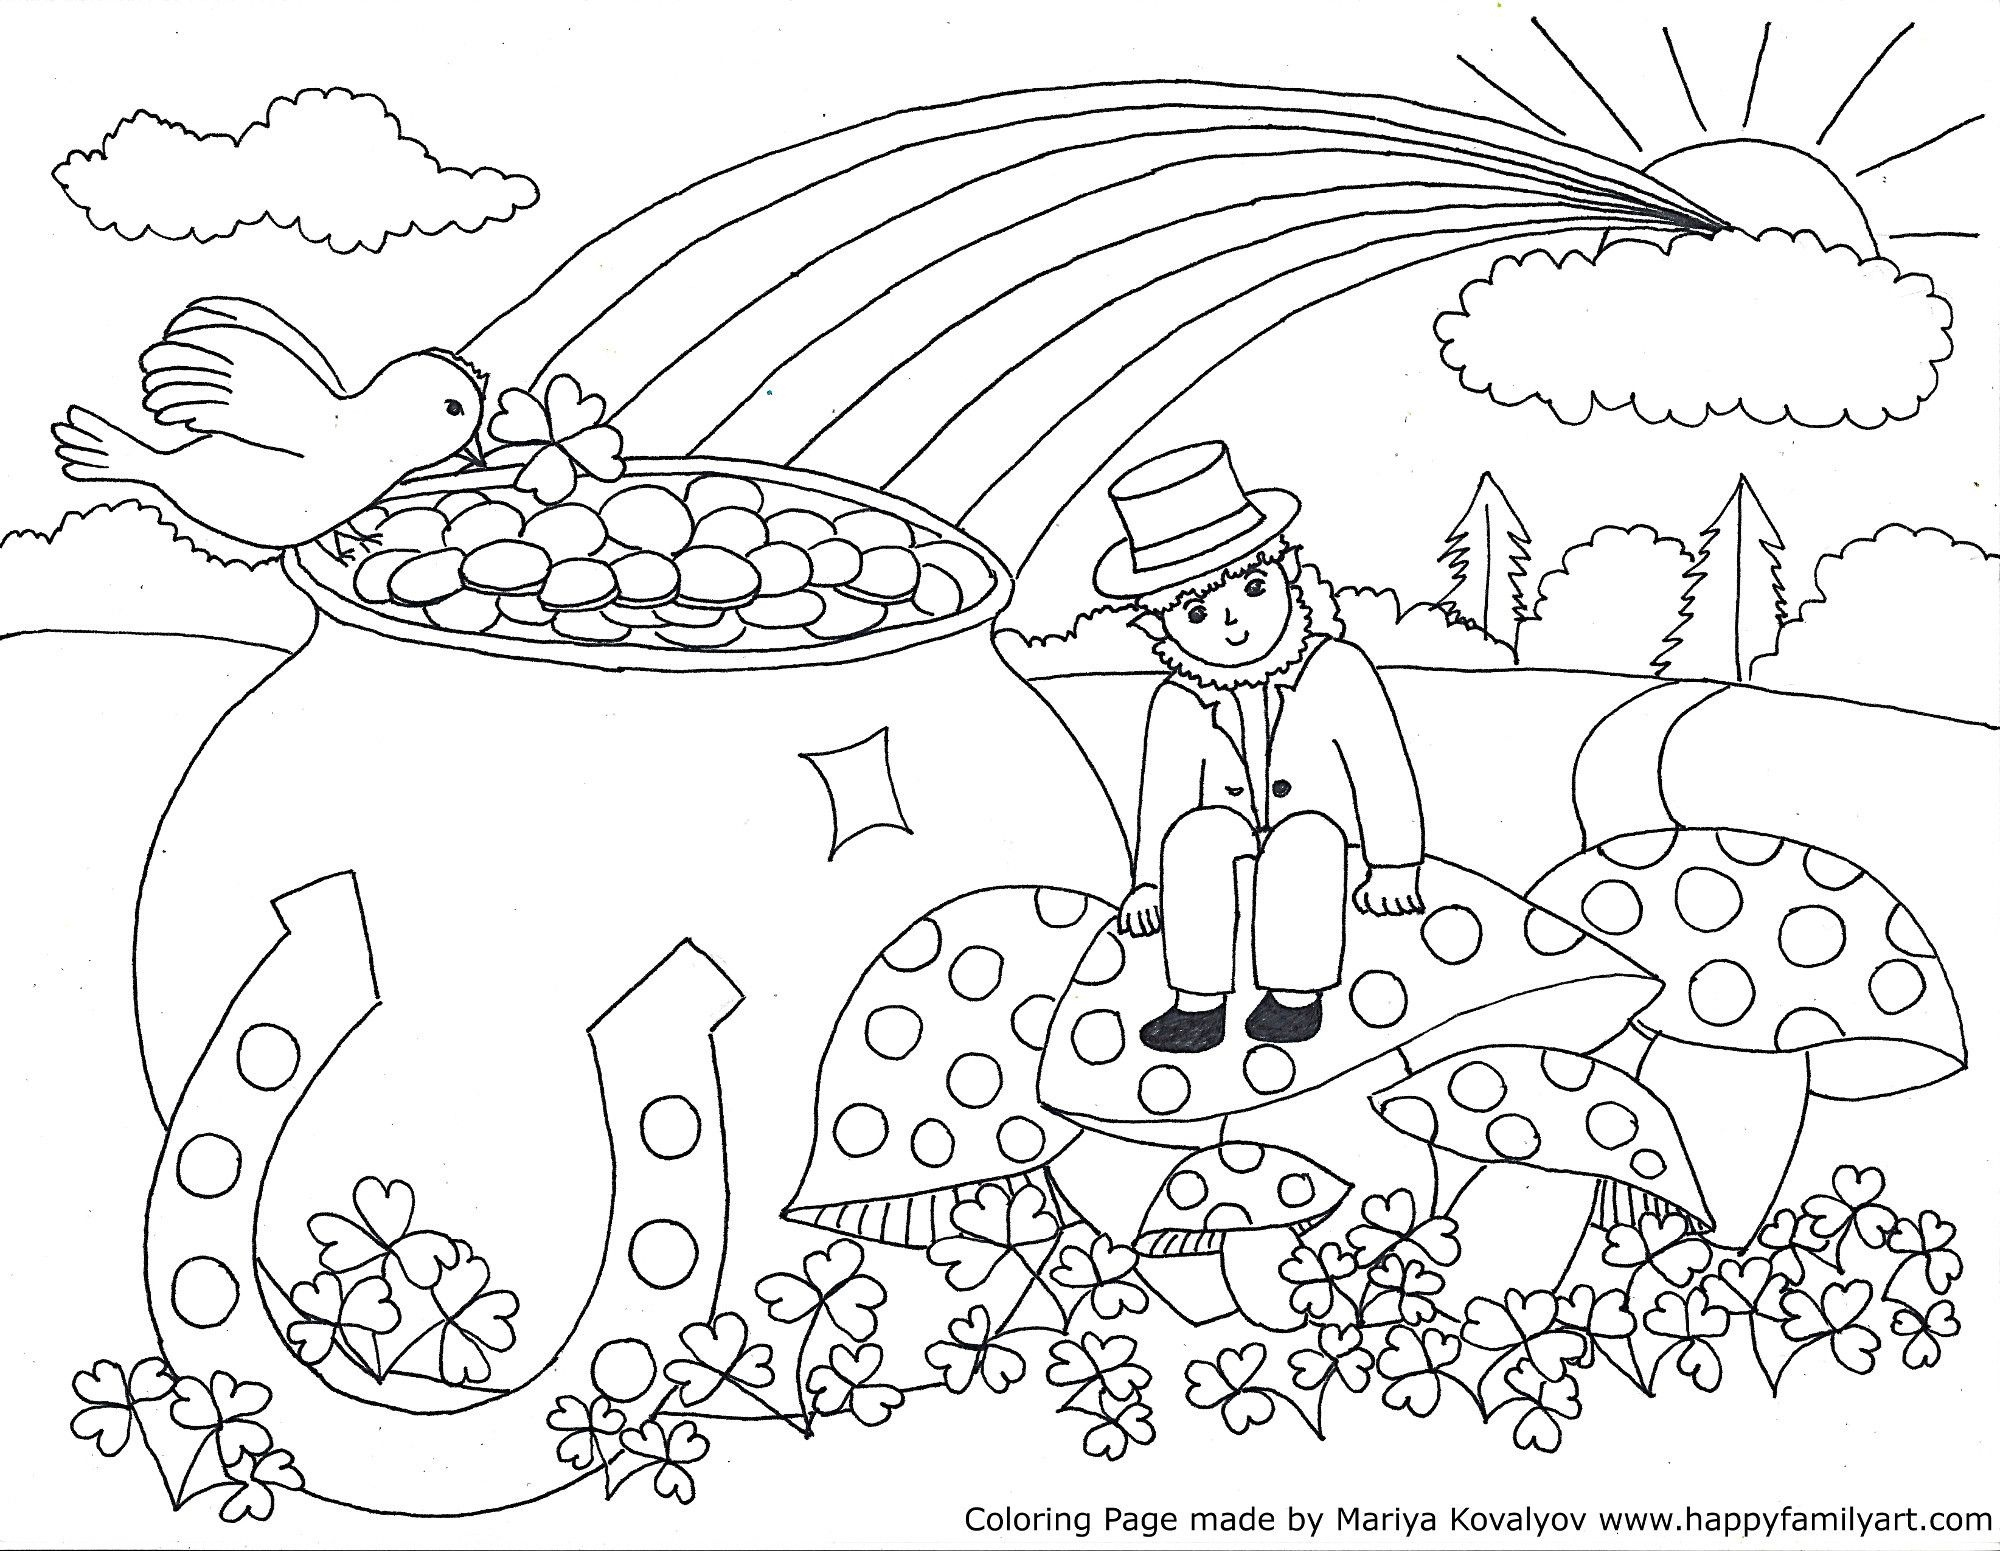 Stpatriksmedium - | Coloring Pages | Color, St Patrick, Coloring Pages - Free Printable Saint Patrick Coloring Pages